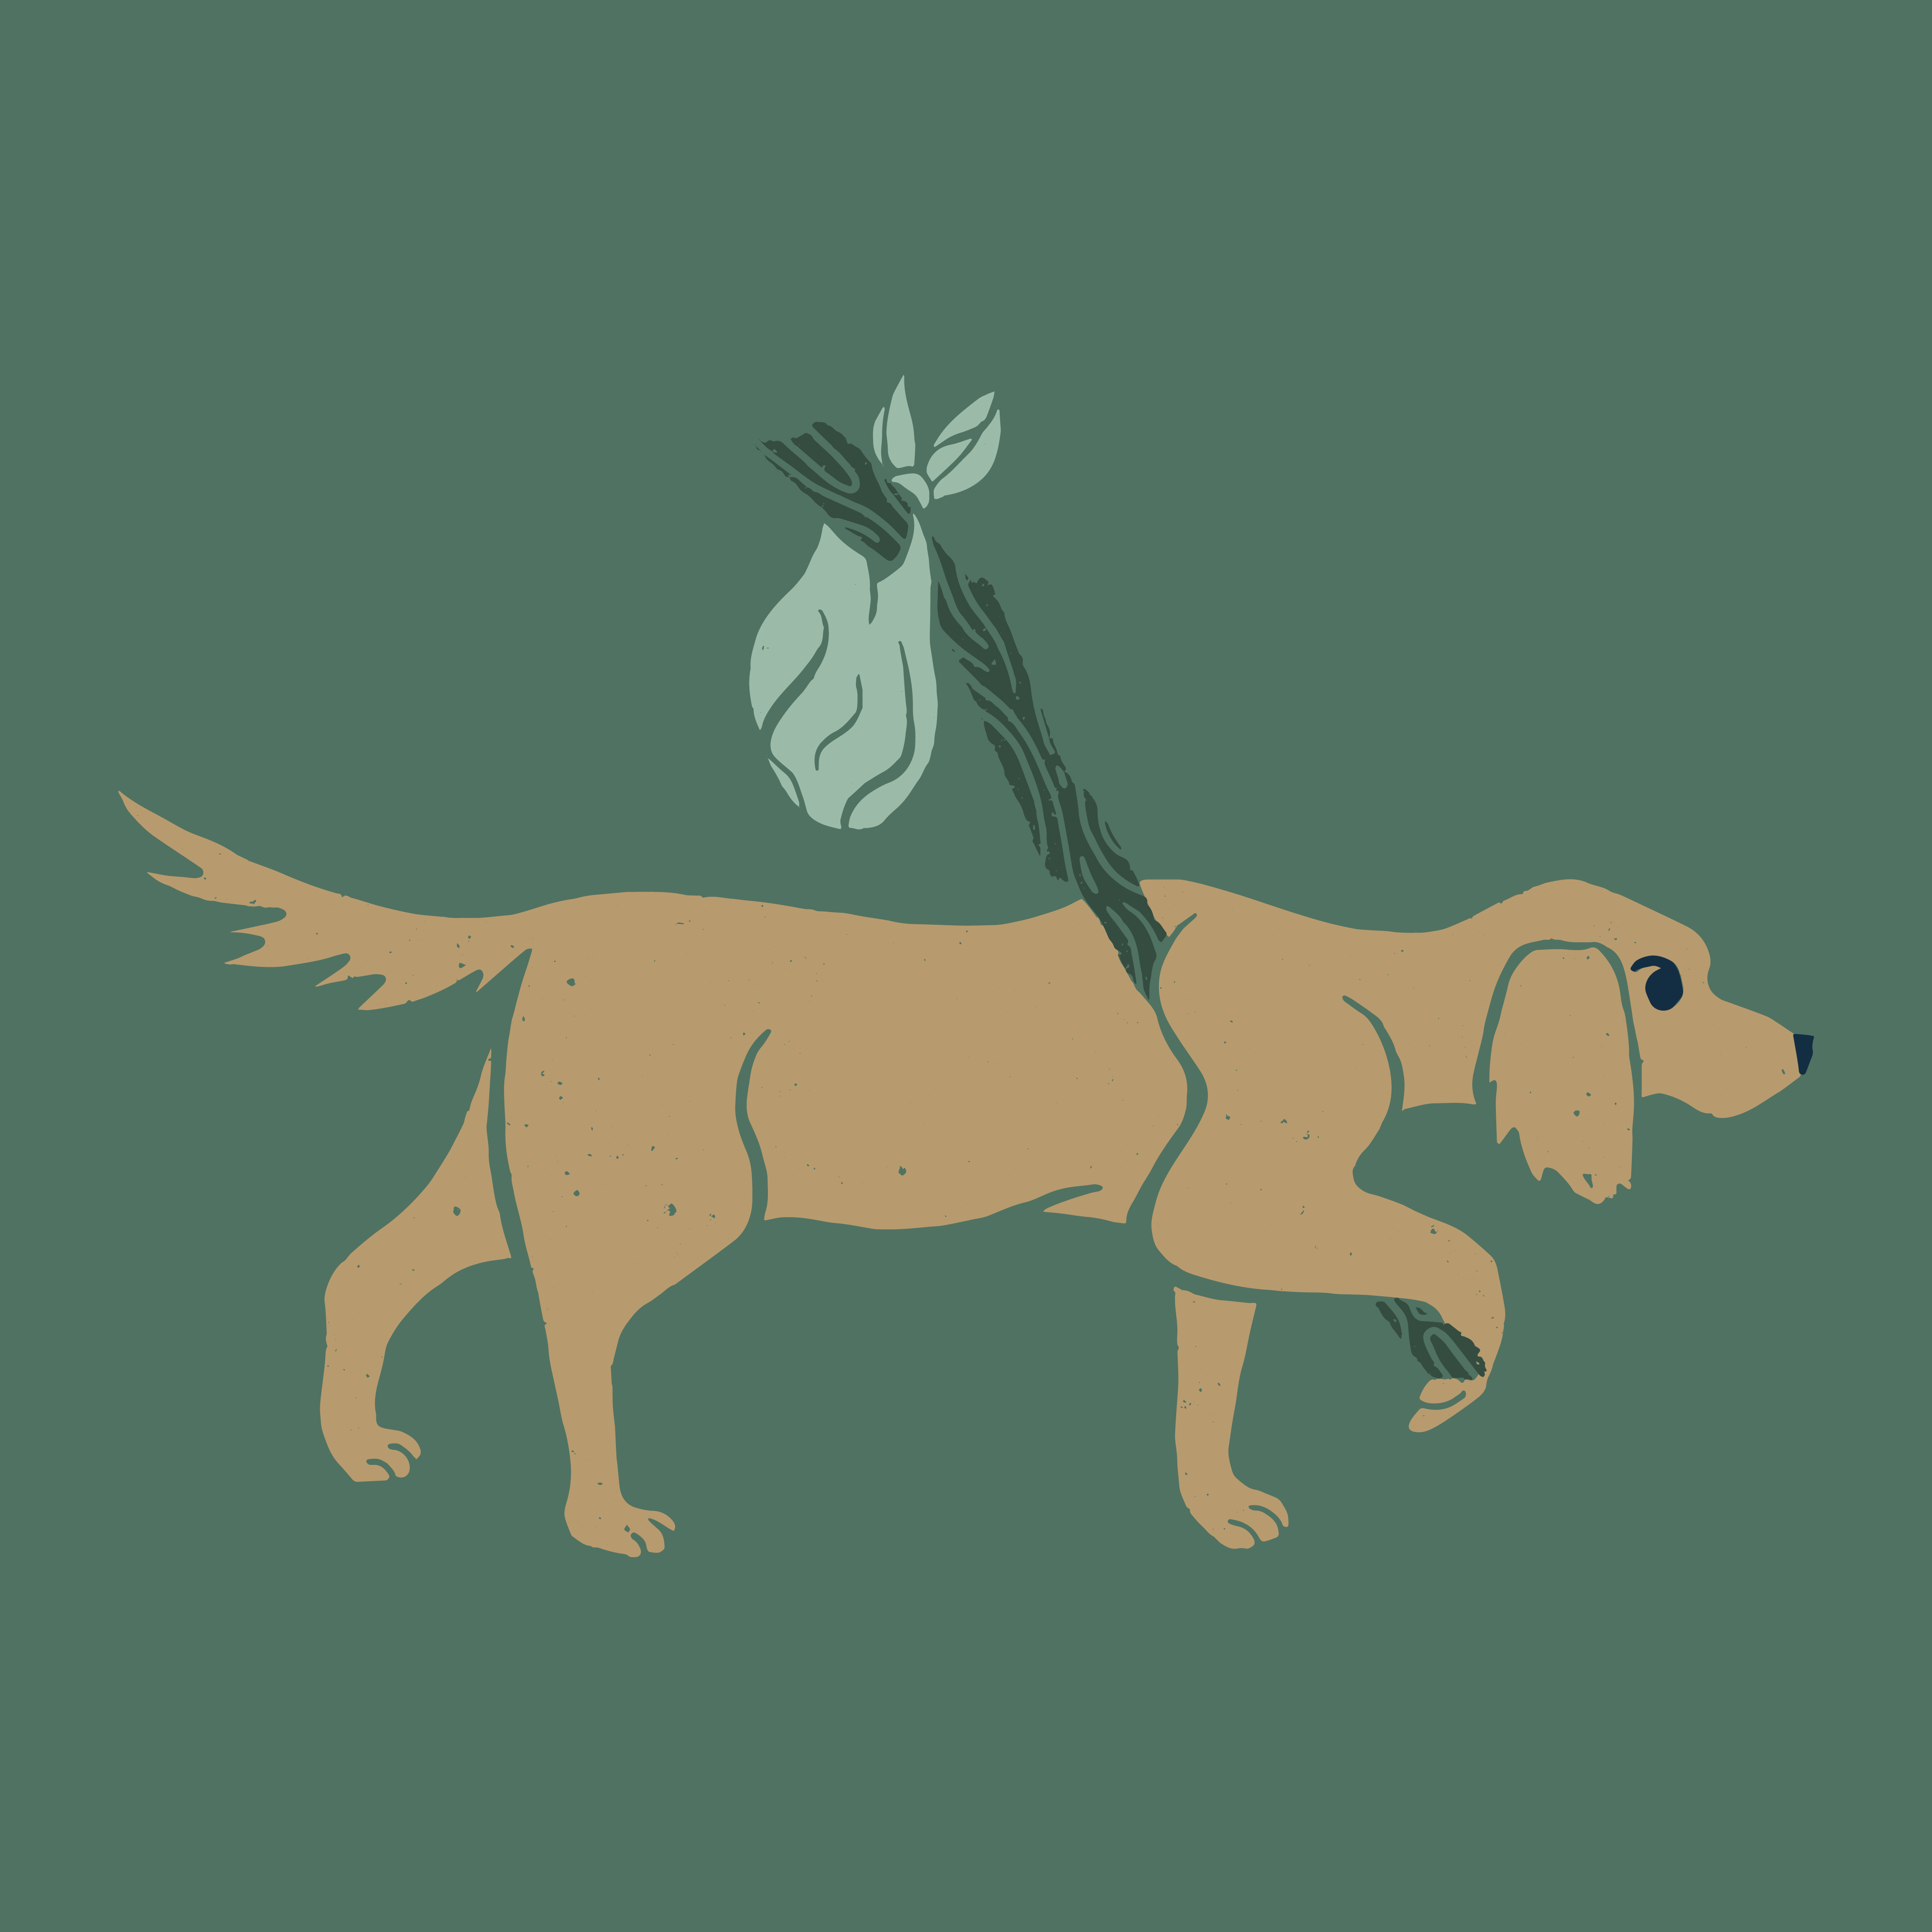 An illustration of a dog carrying a bindle for Grounds & Hounds' Camp Out blend of coffee.